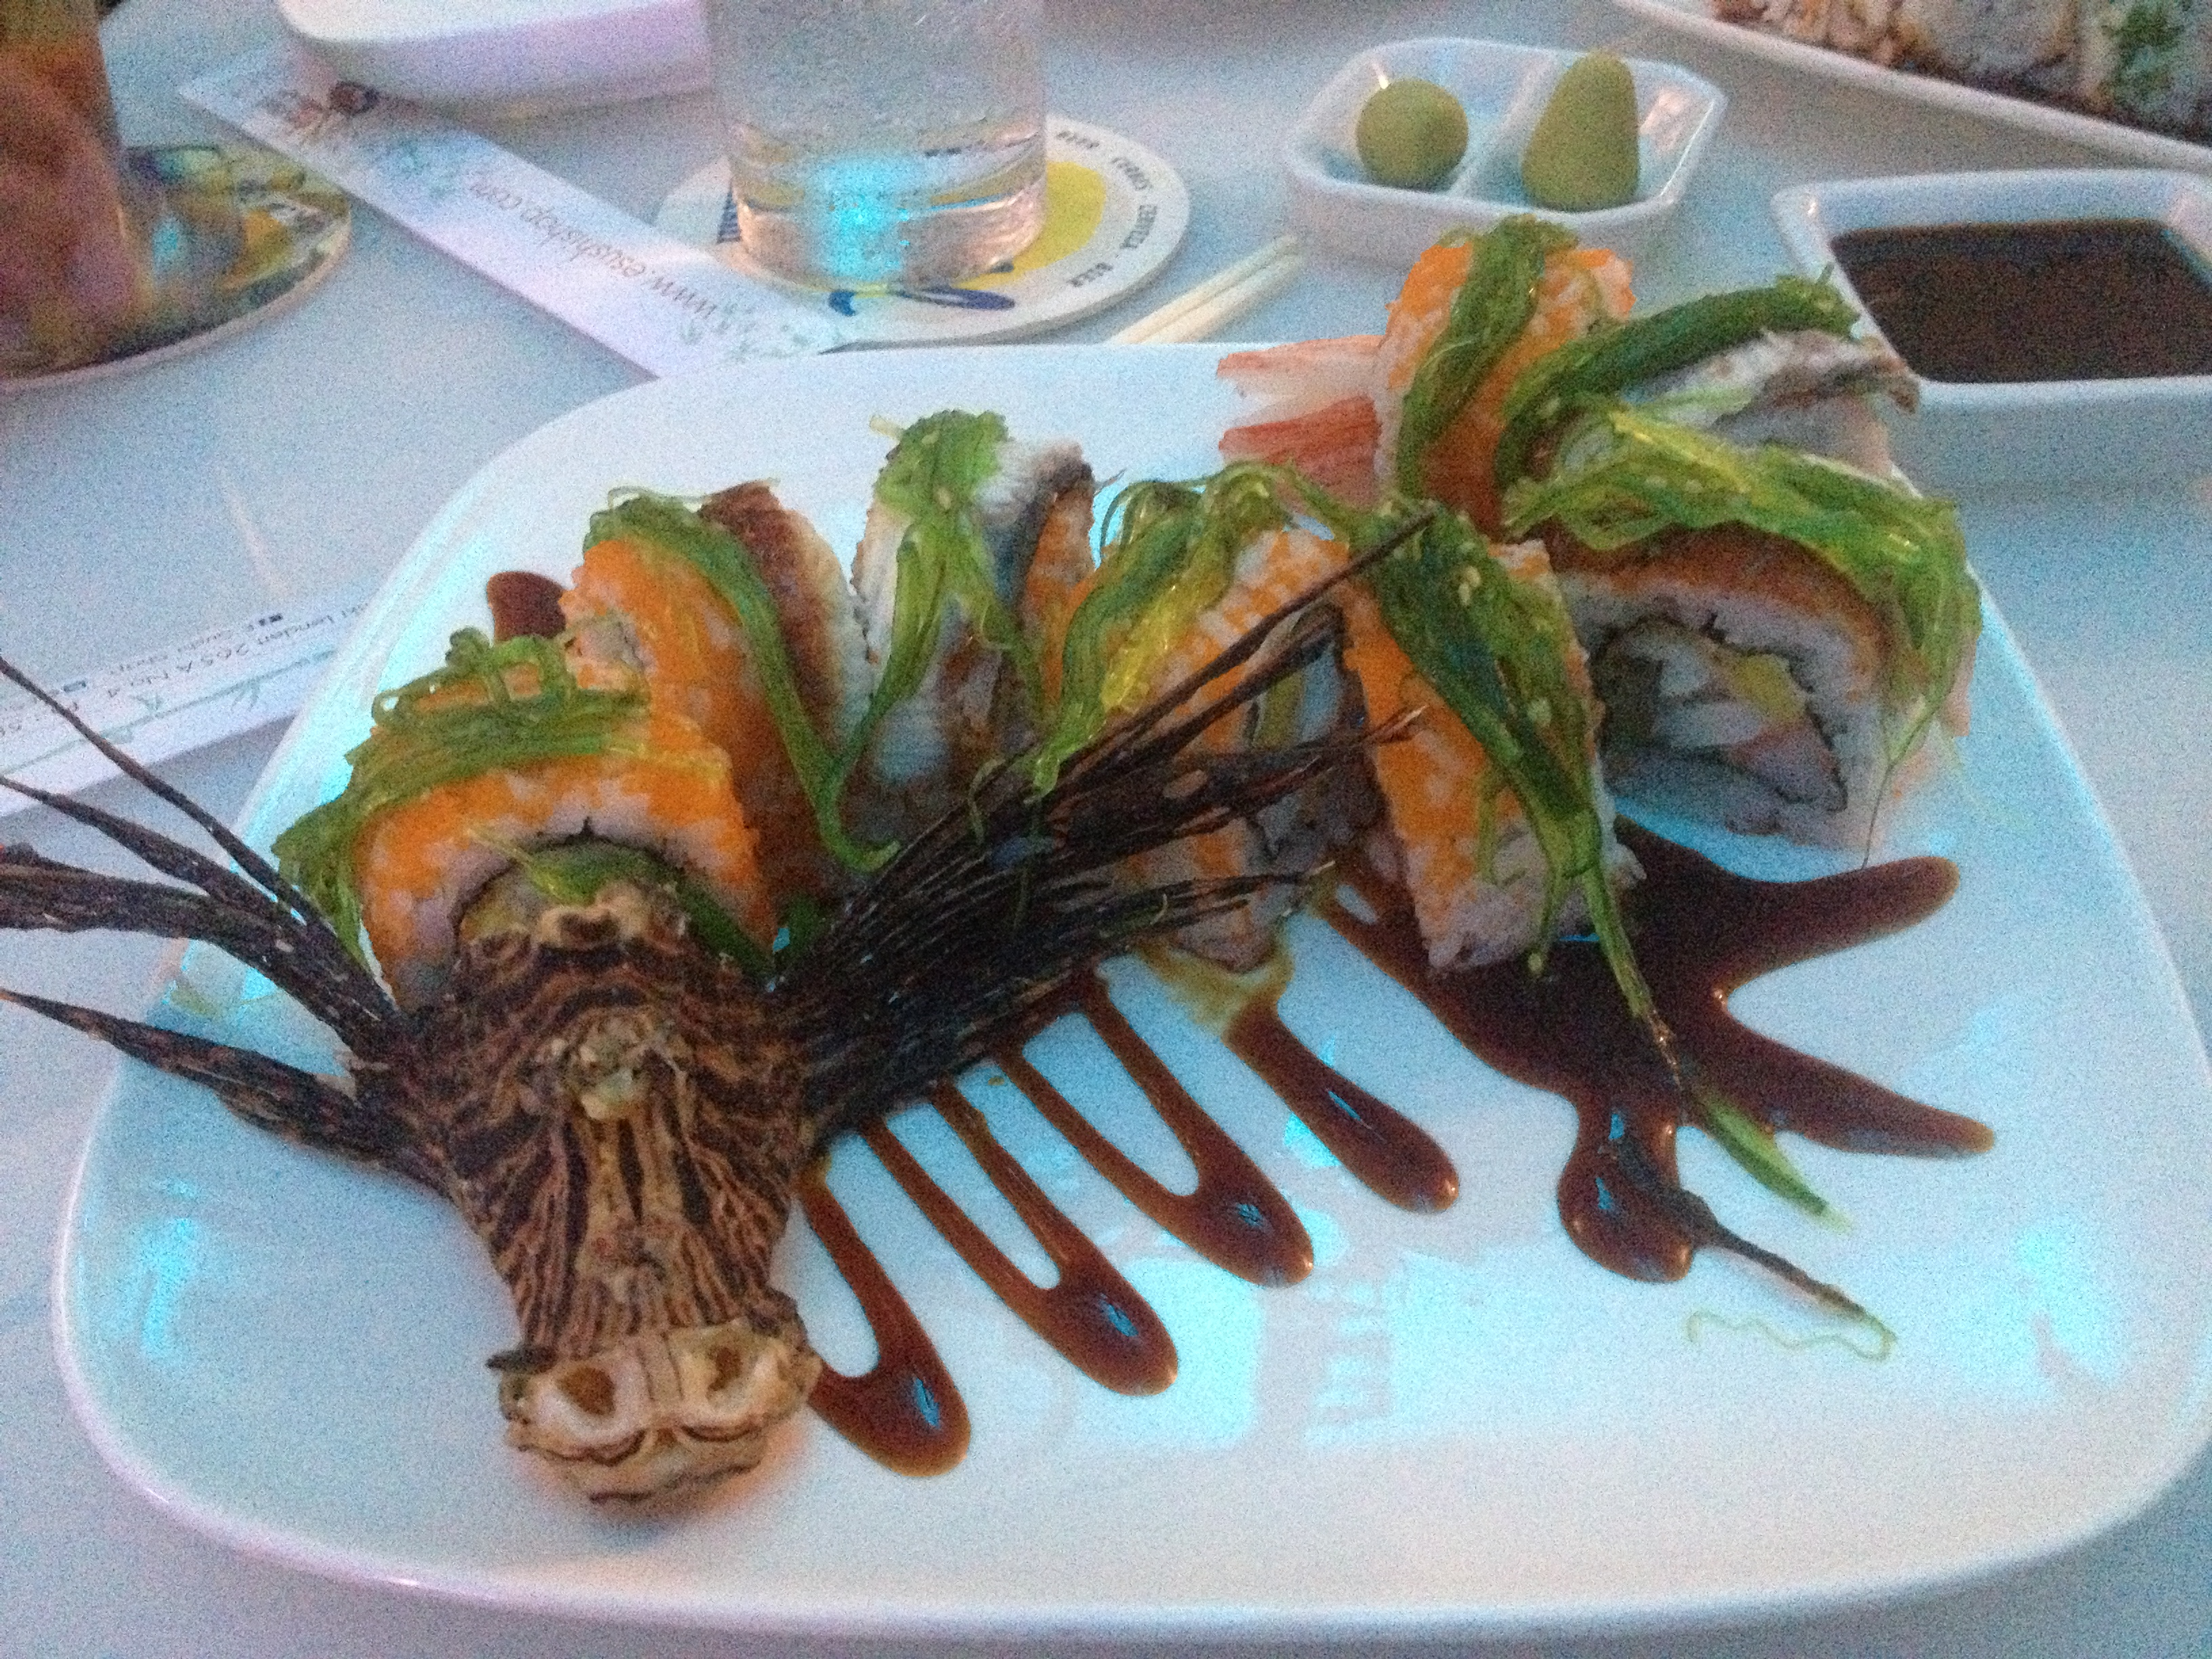 Lionfish Sushi is Innovative and Artistic at E Sushi Shap in Aruba! : Lionfish Hunting